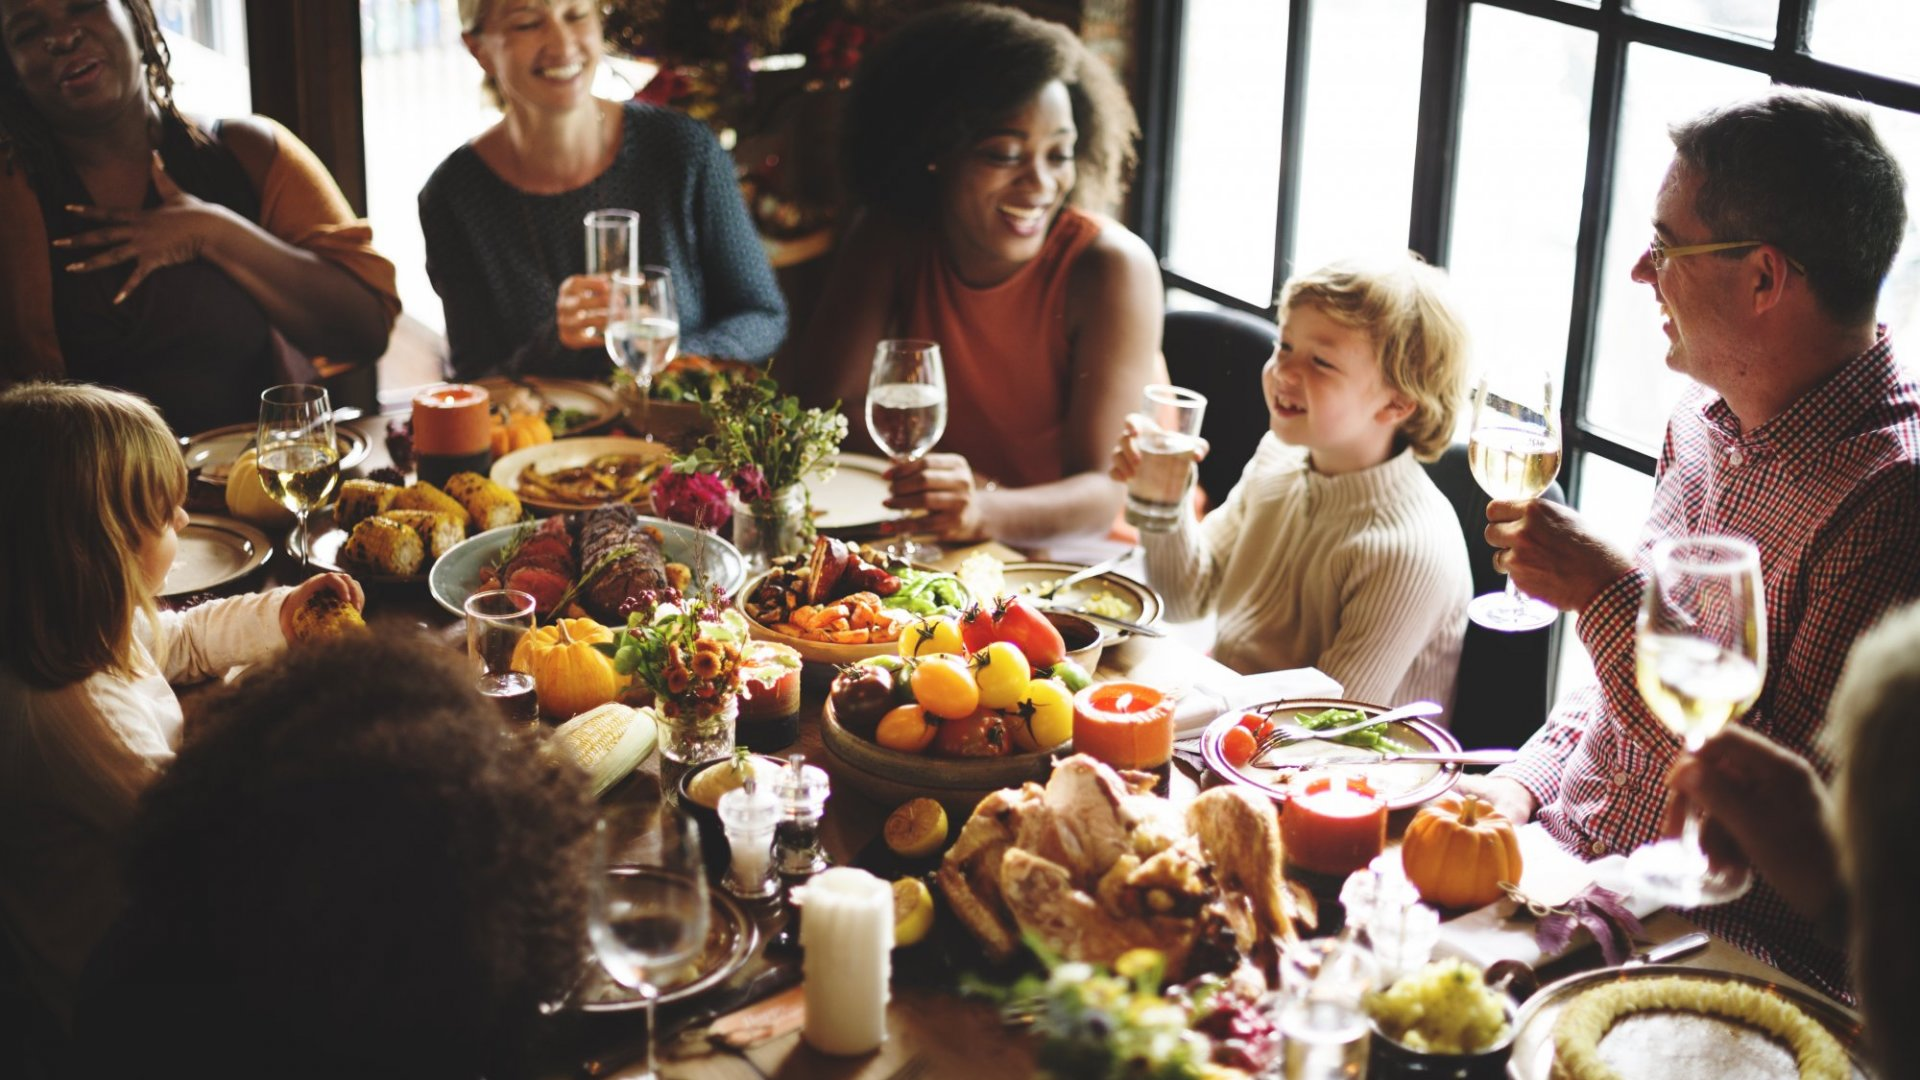 """How to create a good """"constructive arguing"""" environment while at the table for Thanksgiving"""